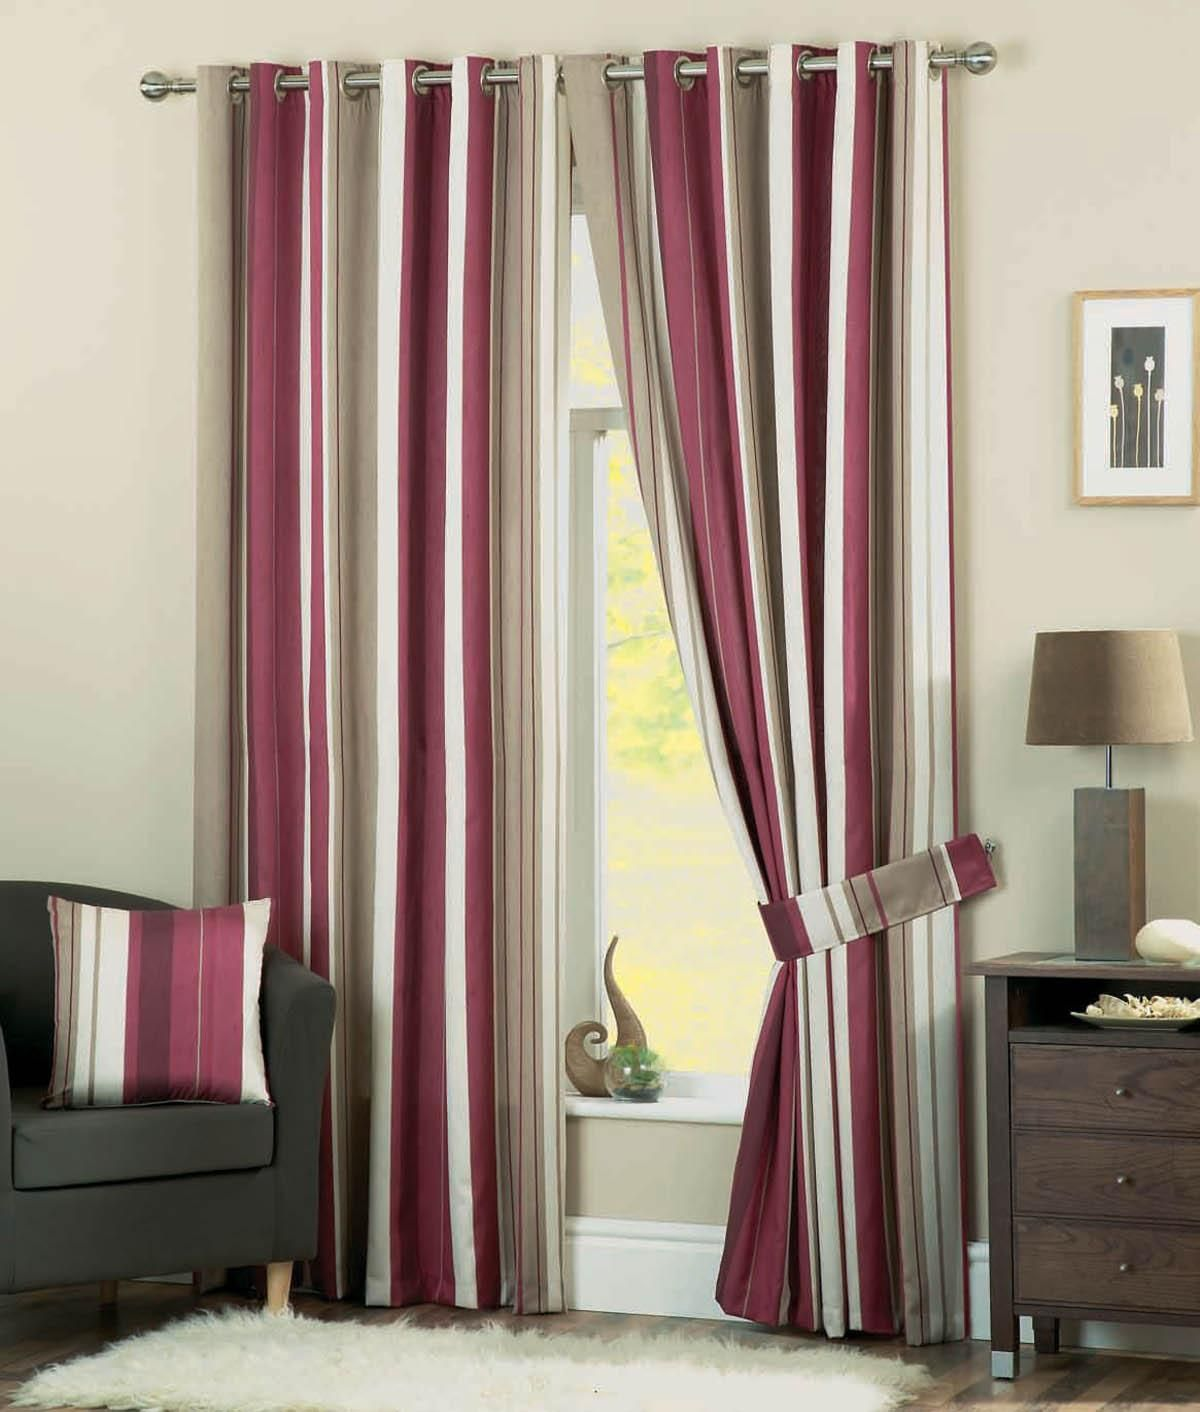 20 Hottest Curtain Designs For 2017   Home Should Always Be The Place Where  You Start